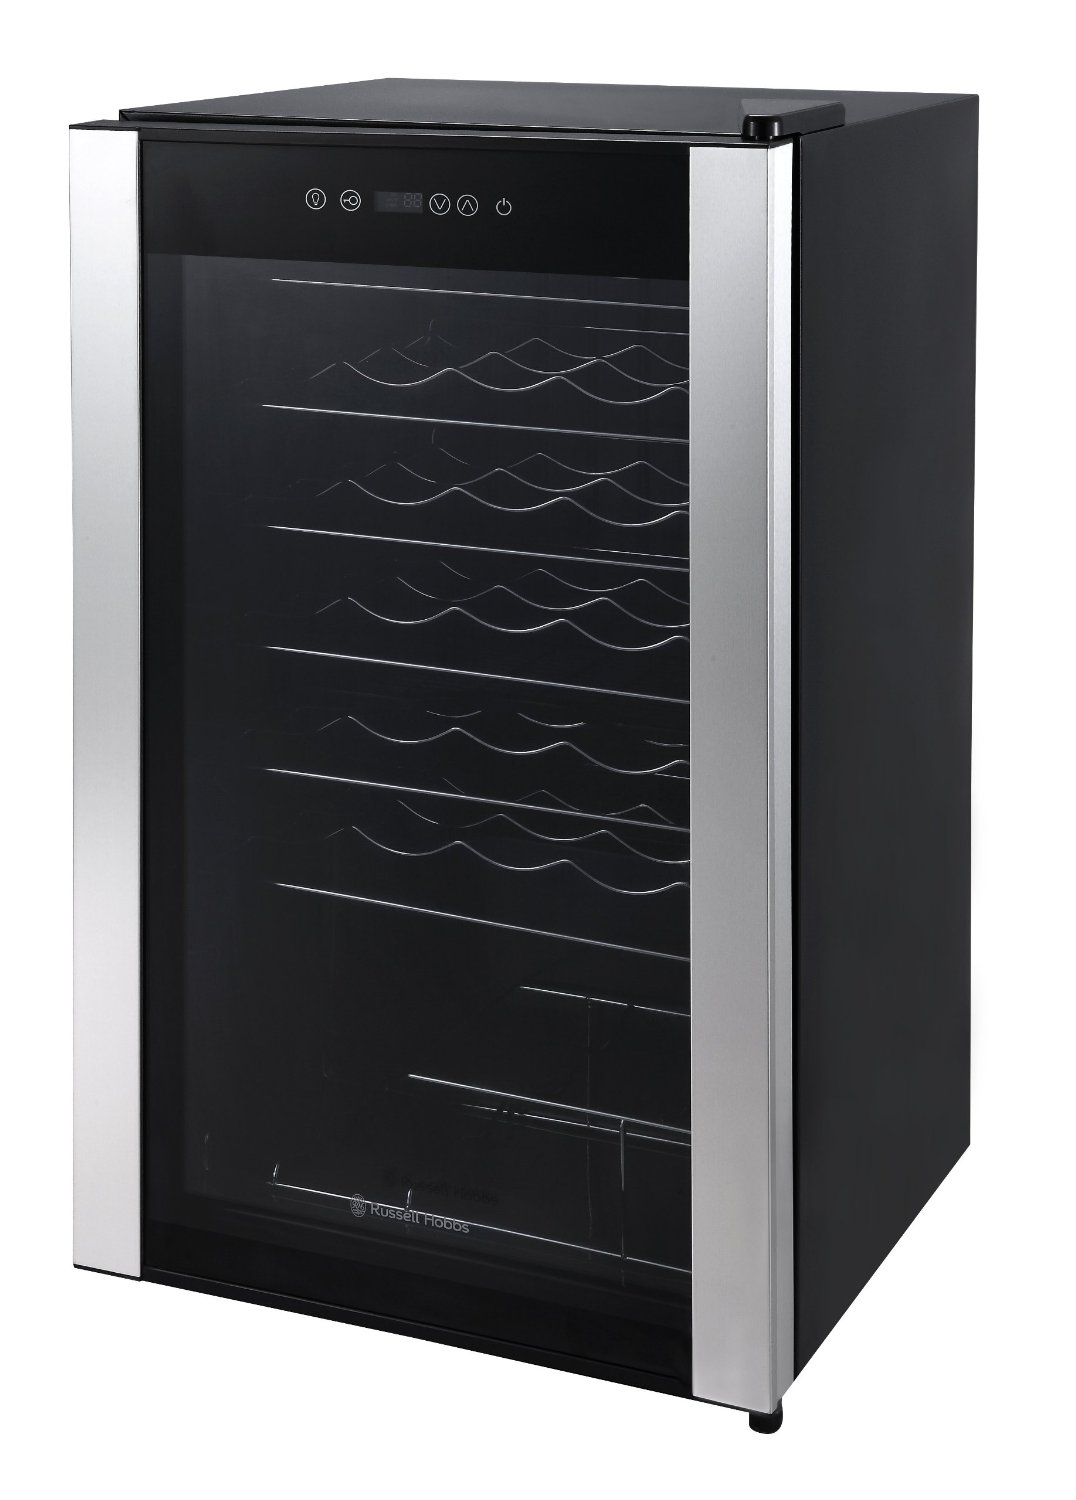 Best Kitchen Wine Fridge & Coolers Buying Guide